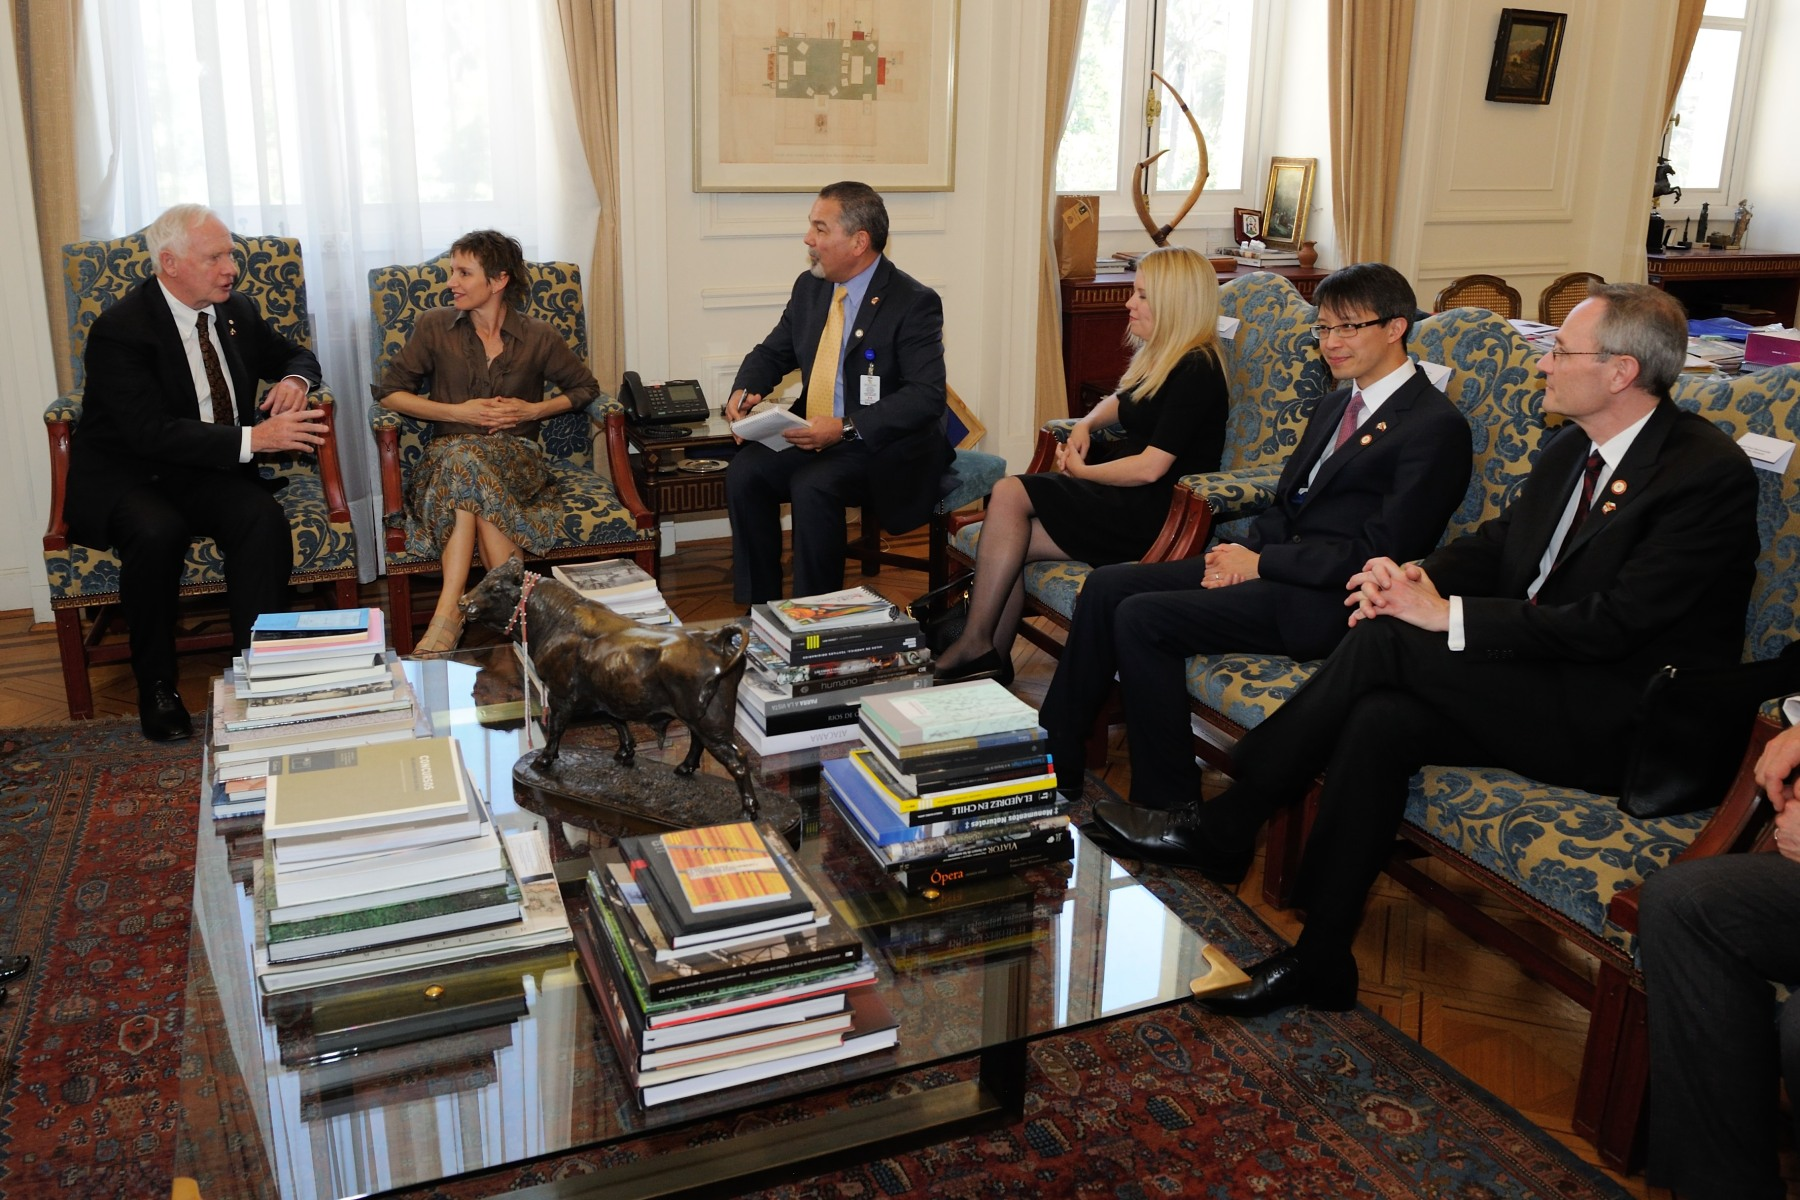 The Governor General and members of the Canadian delegation then met with Carolina Tohá Morales, Mayor of Santiago.